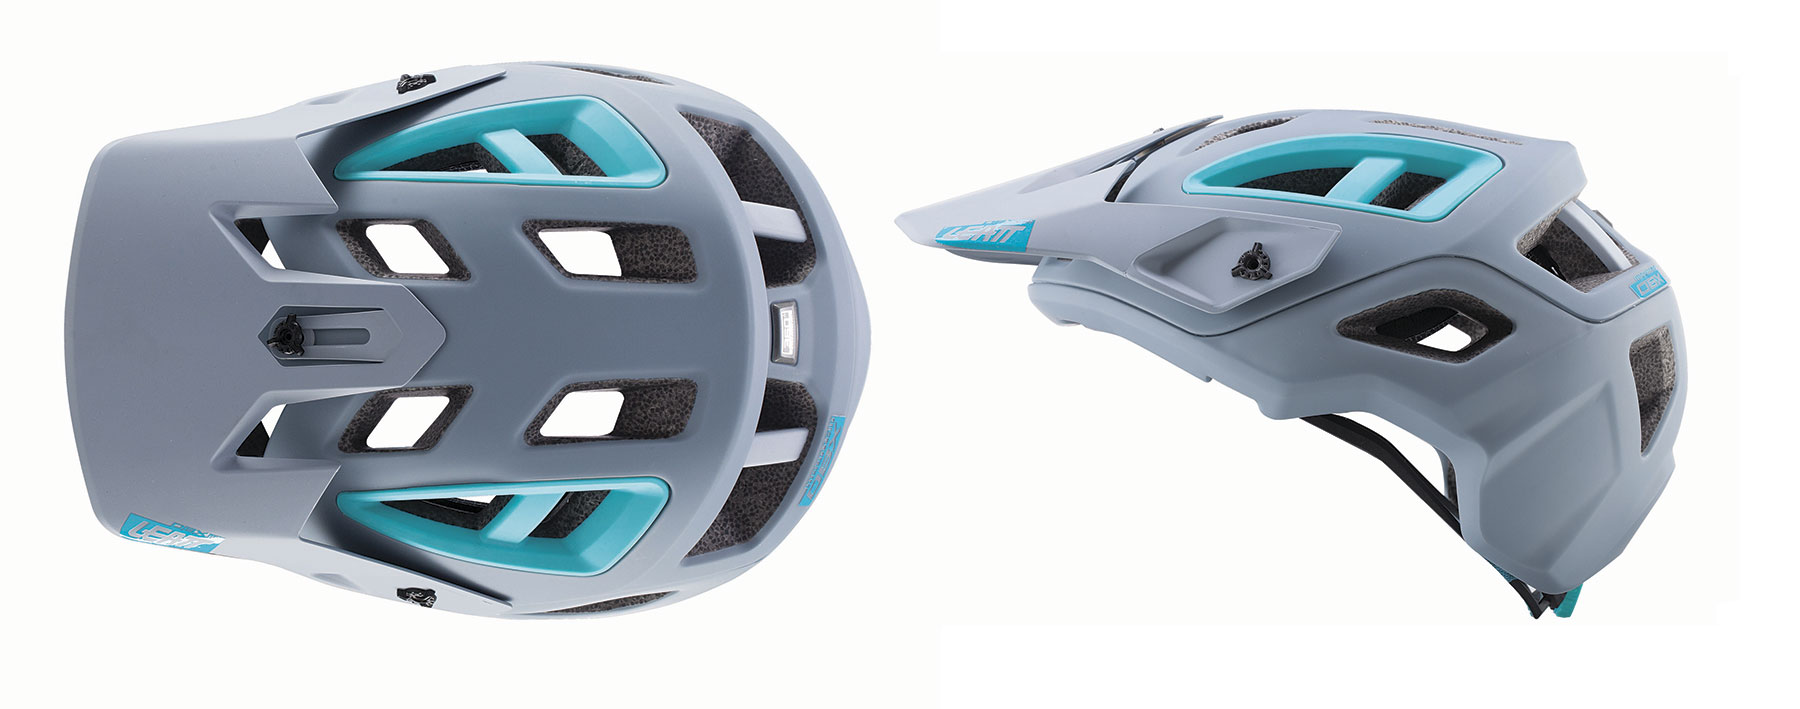 Casco  casco Leatt DBX 3.0 AllMountain - Gris